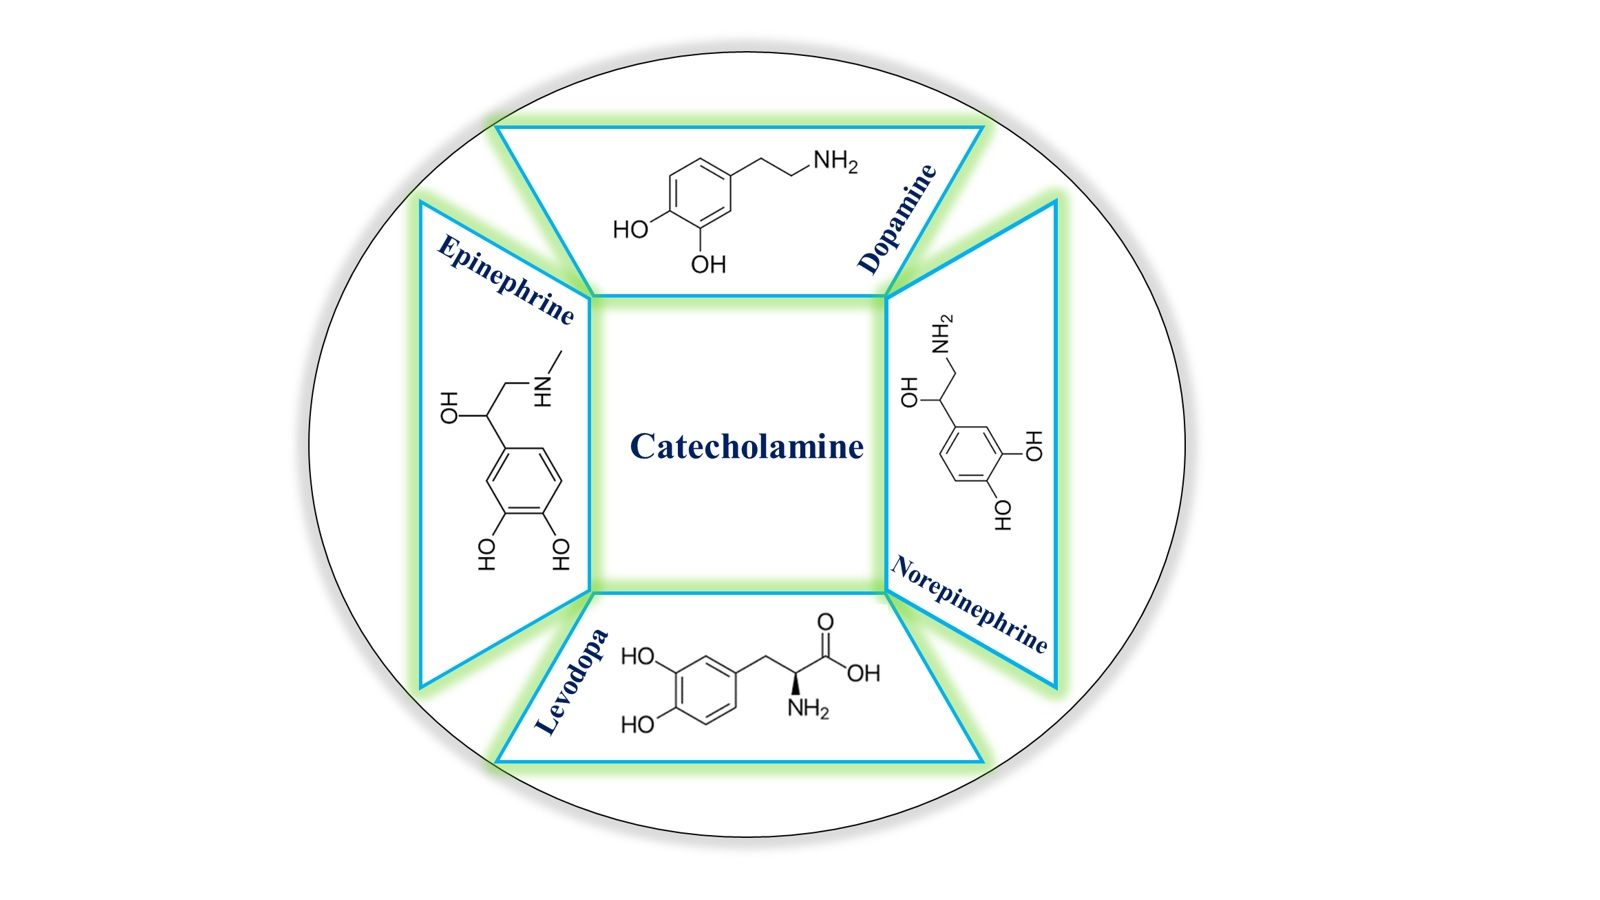 Recent Advances in Fluorescence Detection of Catecholamines